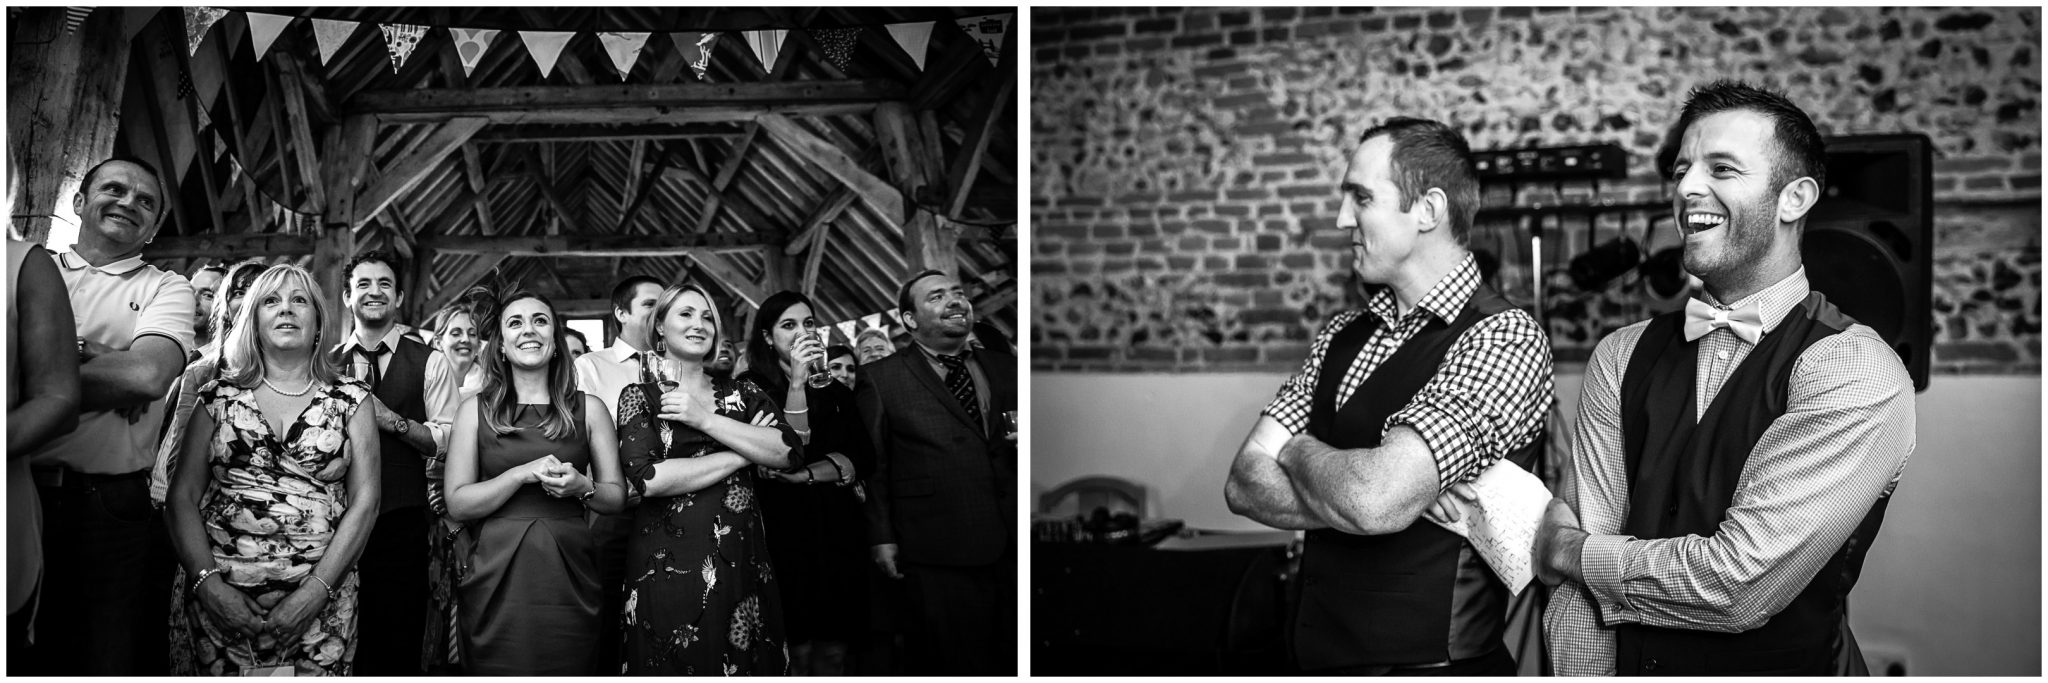 Winchester Great Hall wedding photography candids during speeches black and white